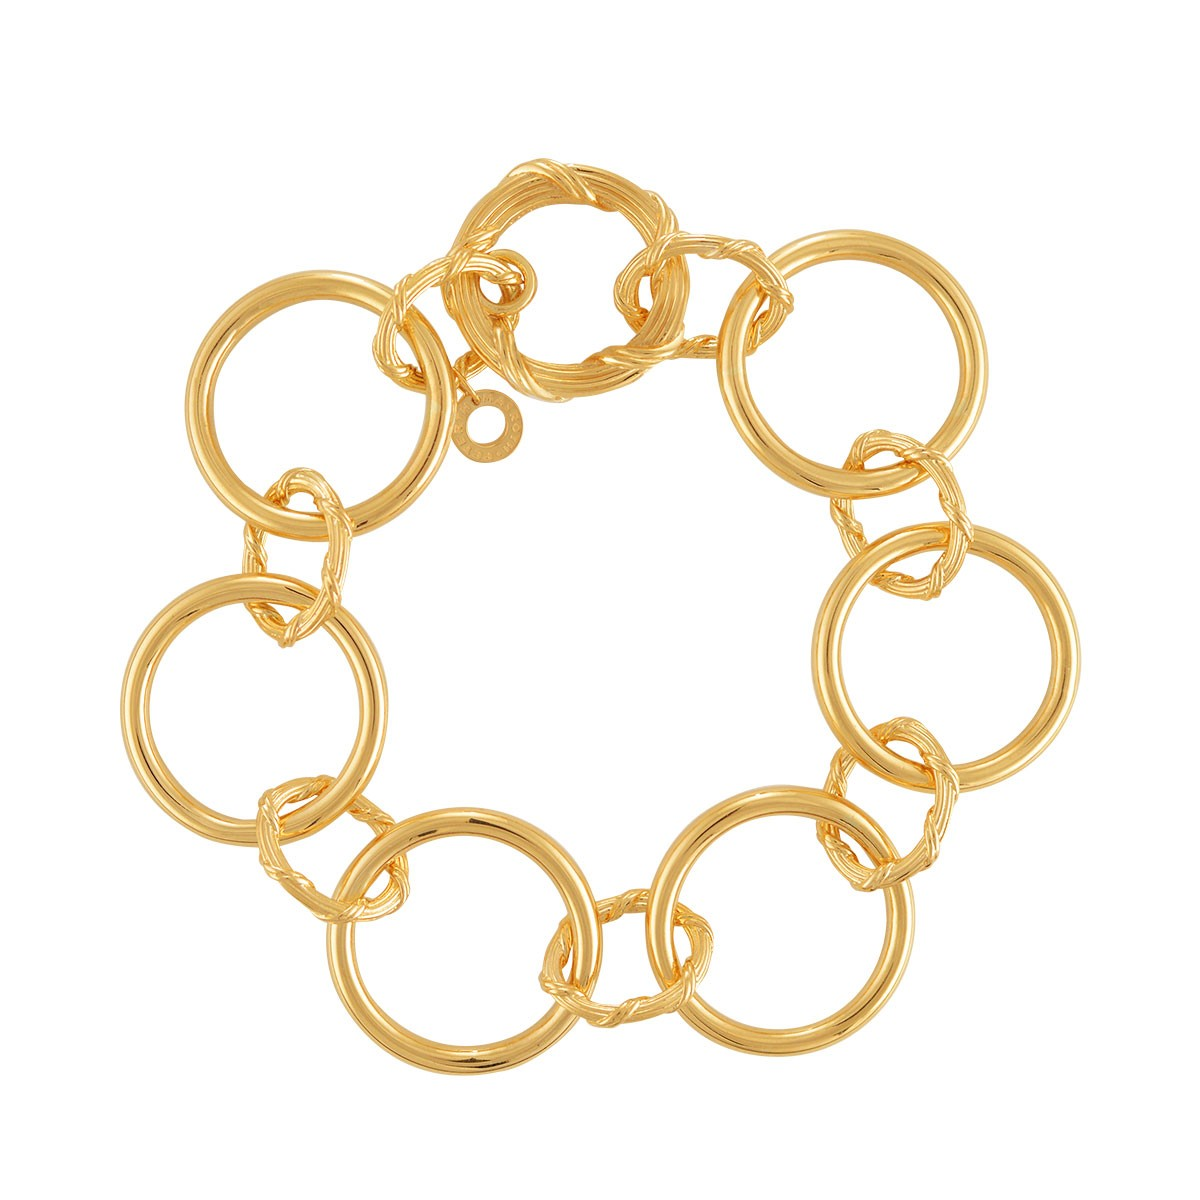 Heritage Mixed Link Bracelet in 18K yellow gold